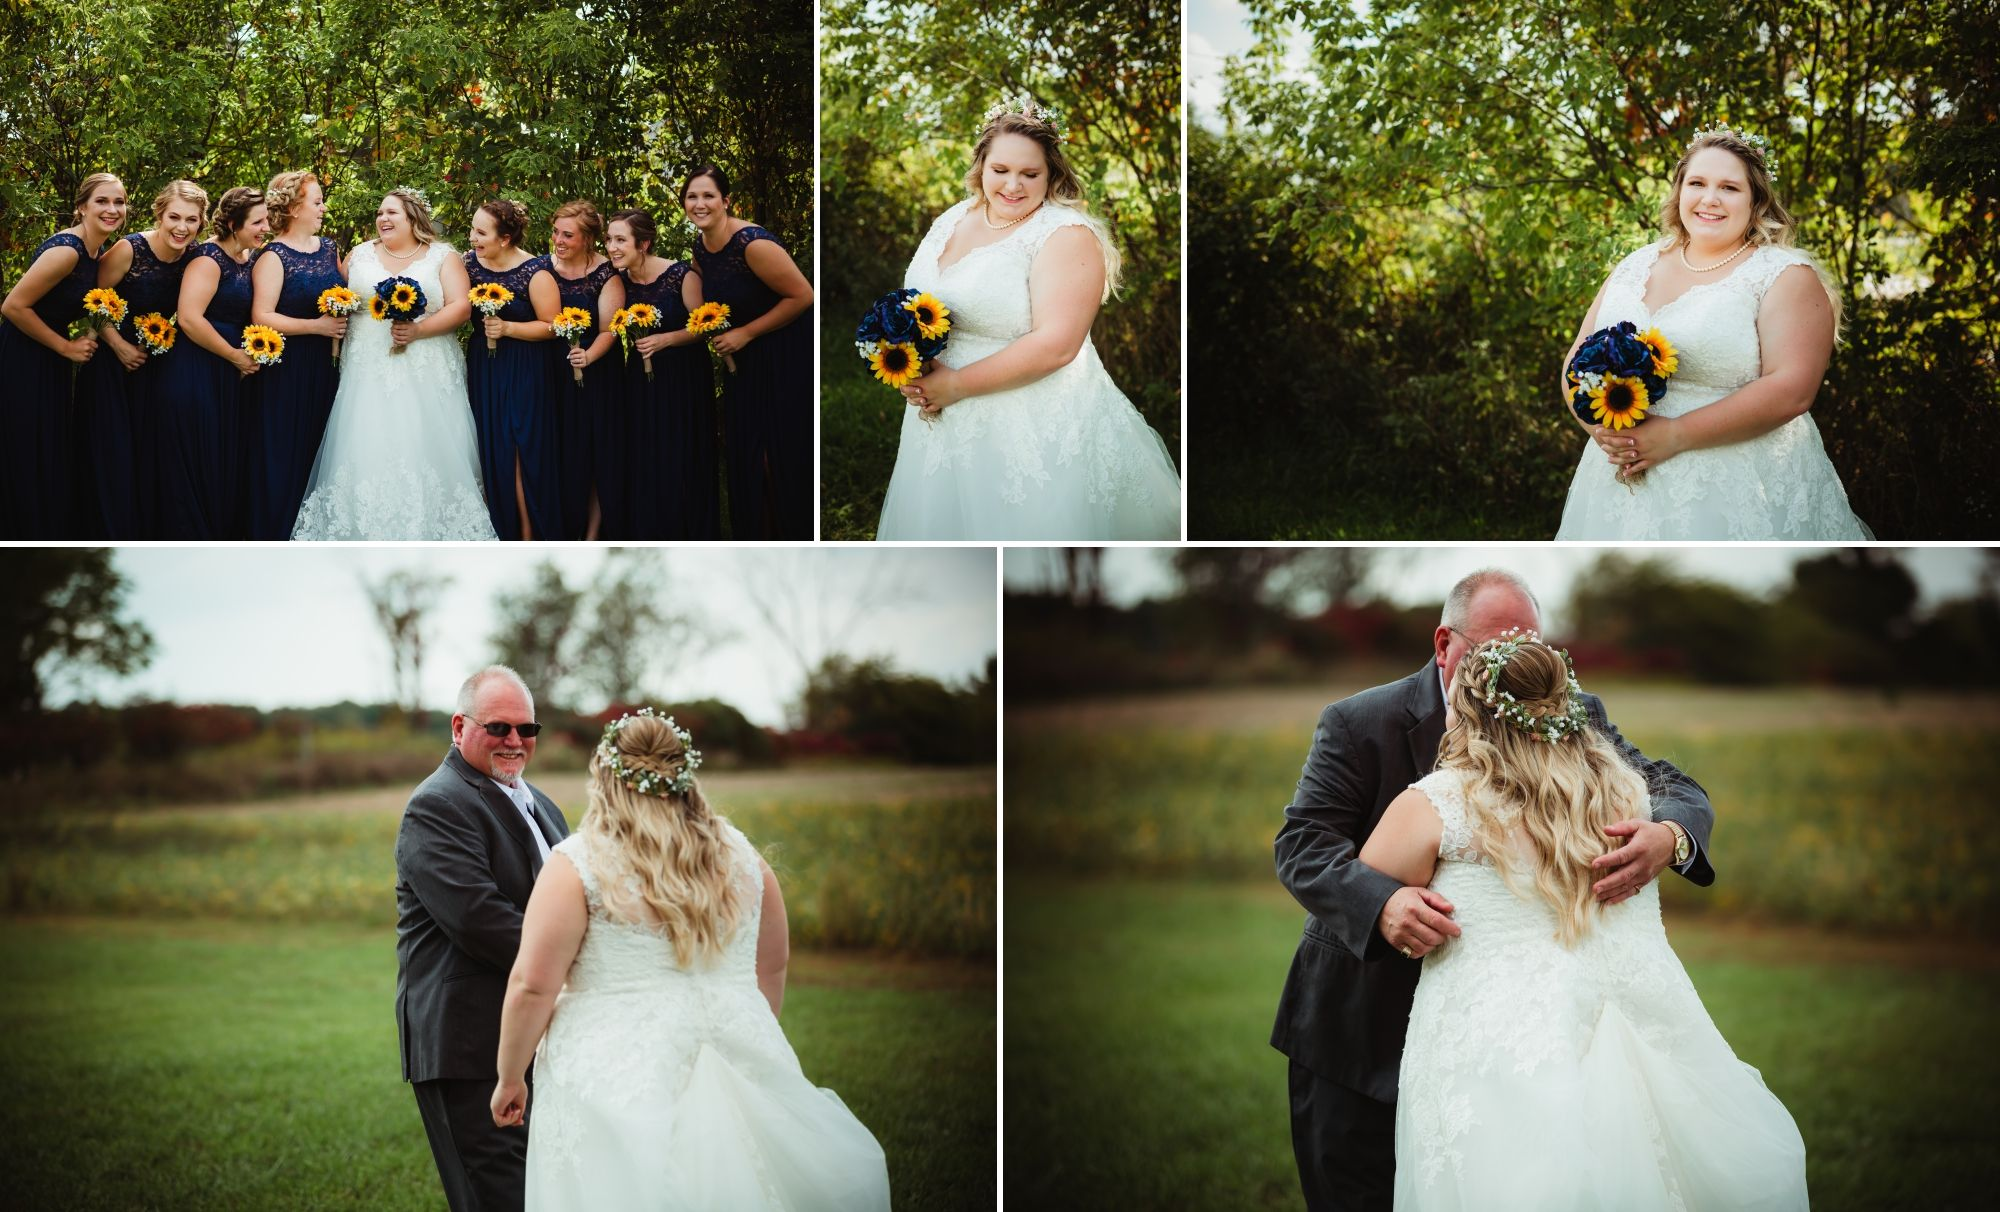 Collage of bridesmaids, bride, and bride's dad seeing her for the first time in her long lace dress.